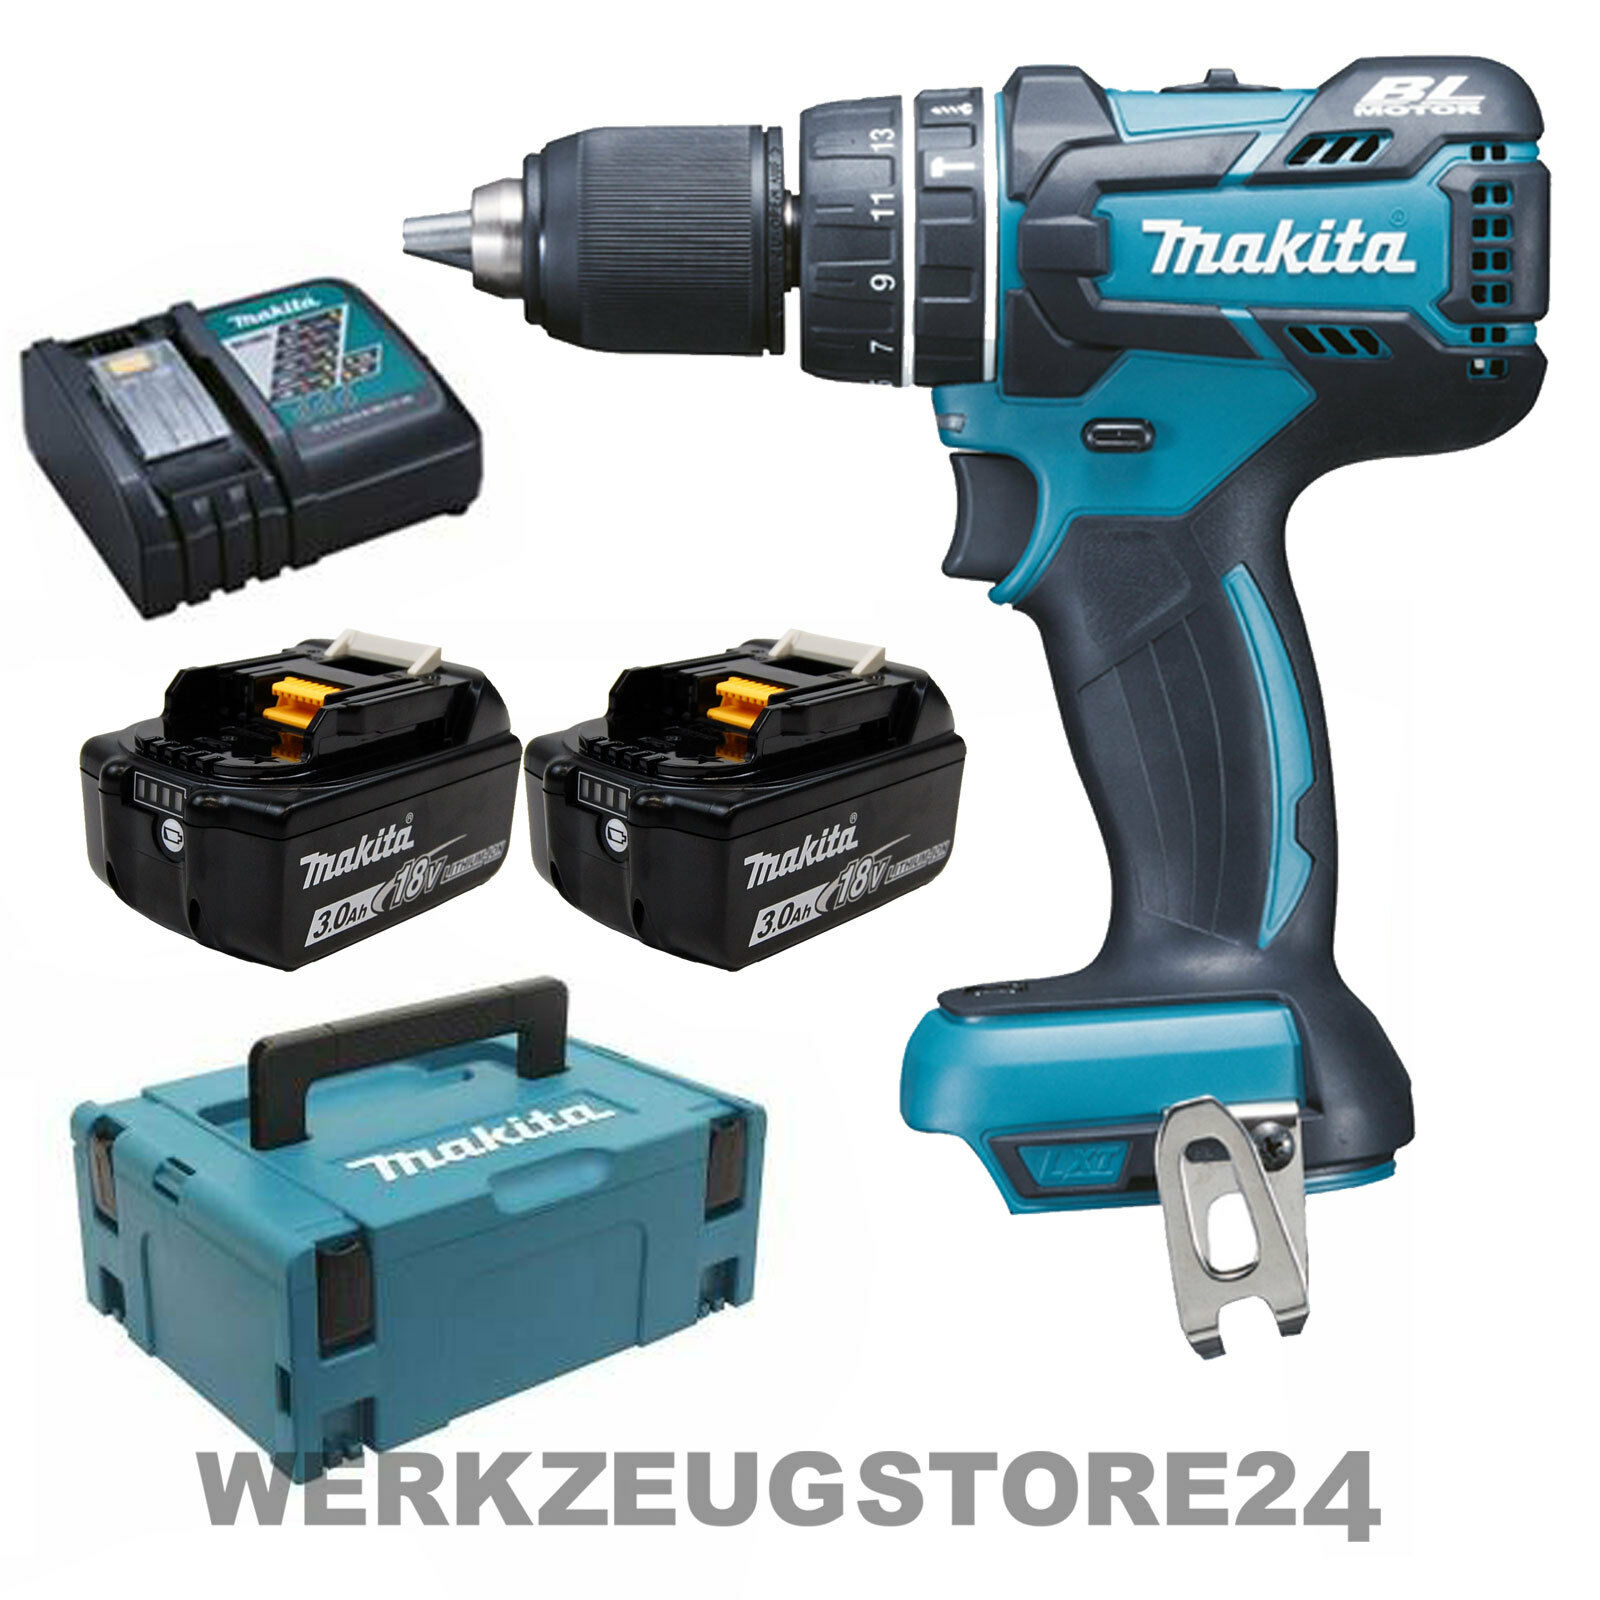 makita dhp480rfj akku schlagbohrschrauber 18v 2x 3 0ah akku ladeger t makpac eur 279 00. Black Bedroom Furniture Sets. Home Design Ideas